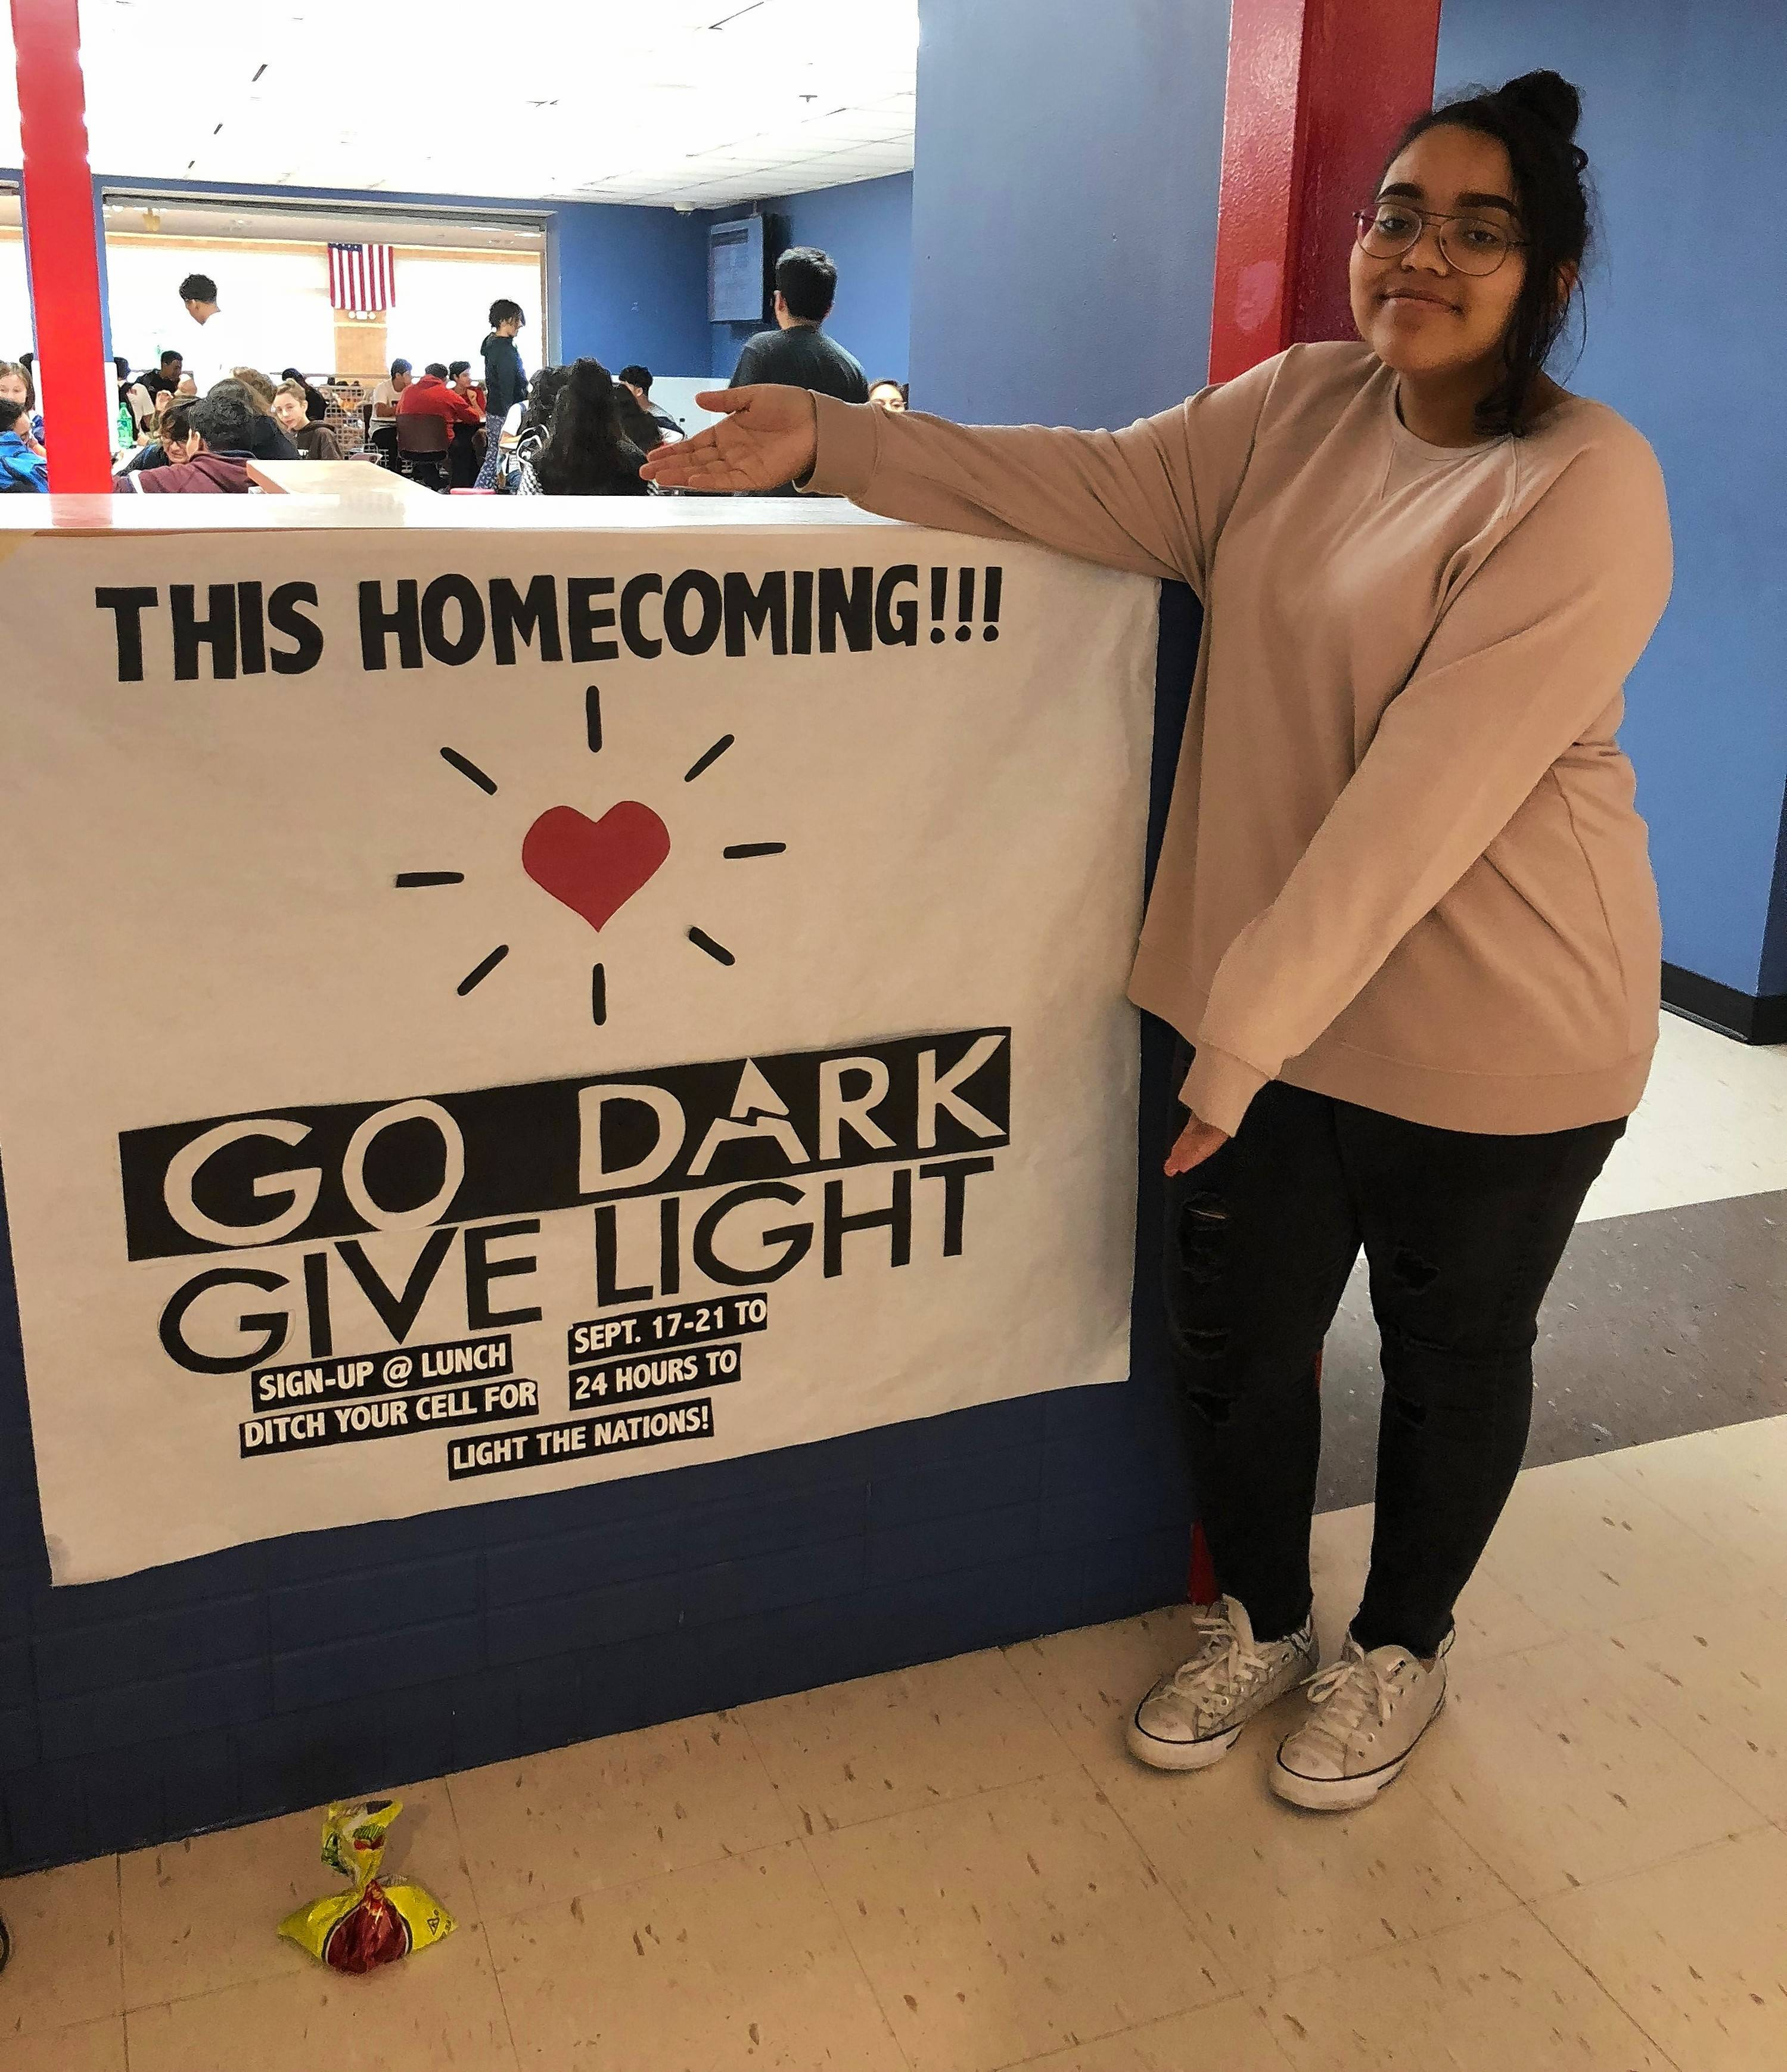 For 24 hours during Homecoming, West Aurora High School students plan to turn off their phones. They are raising funds and awareness for the nonprofit organization called Watts of Love based in Downers Grove.